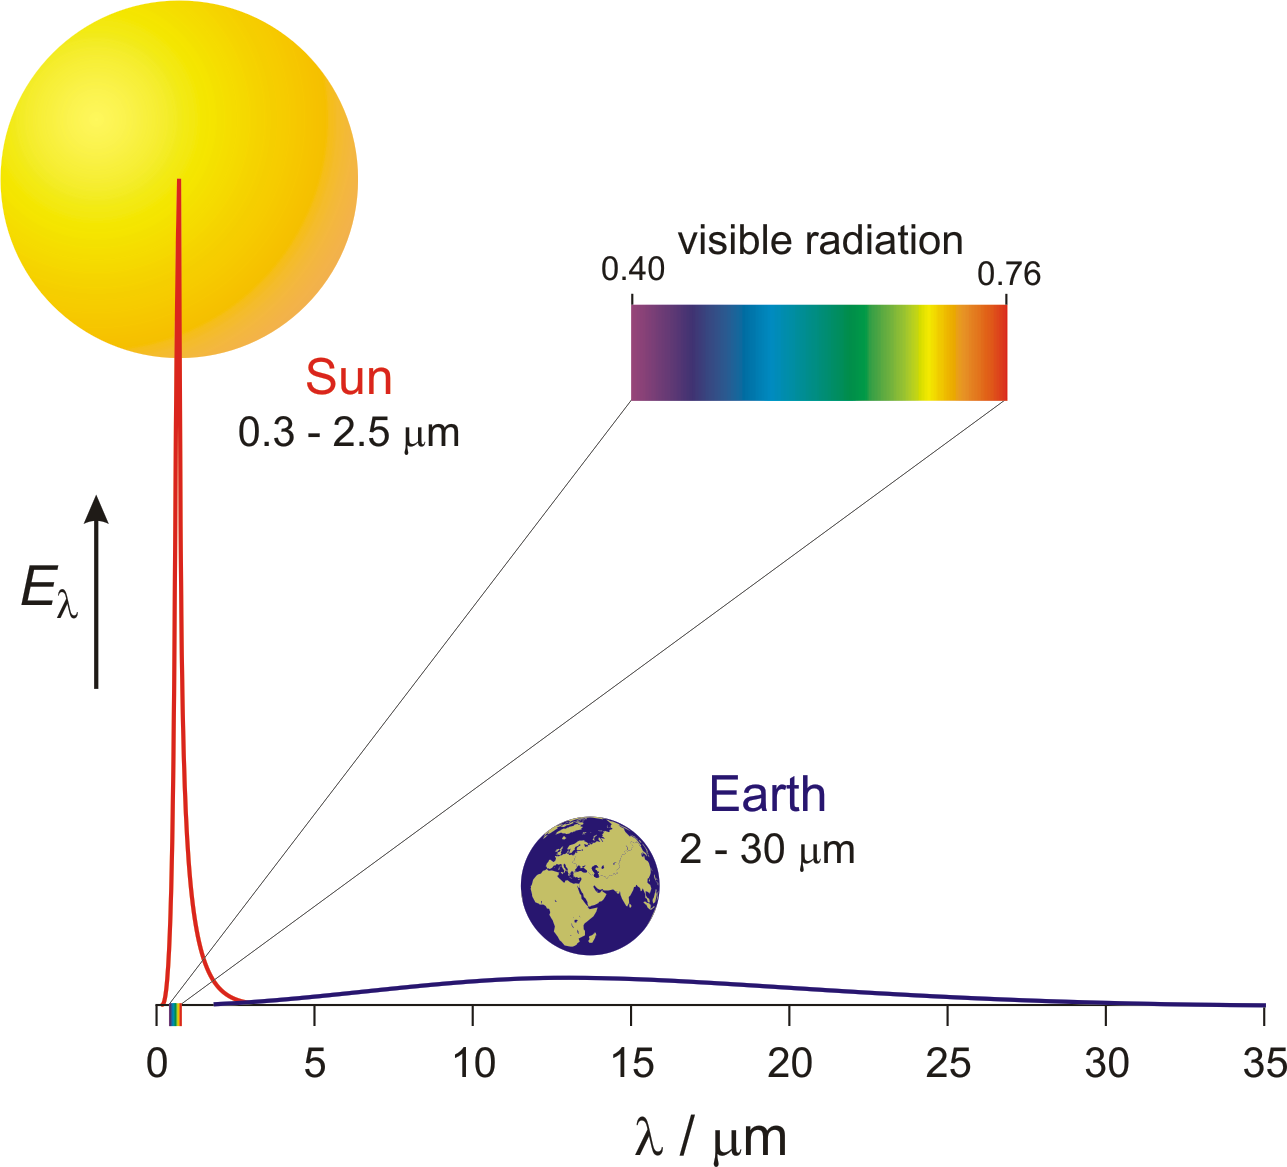 Radiation from the Sun and Earth